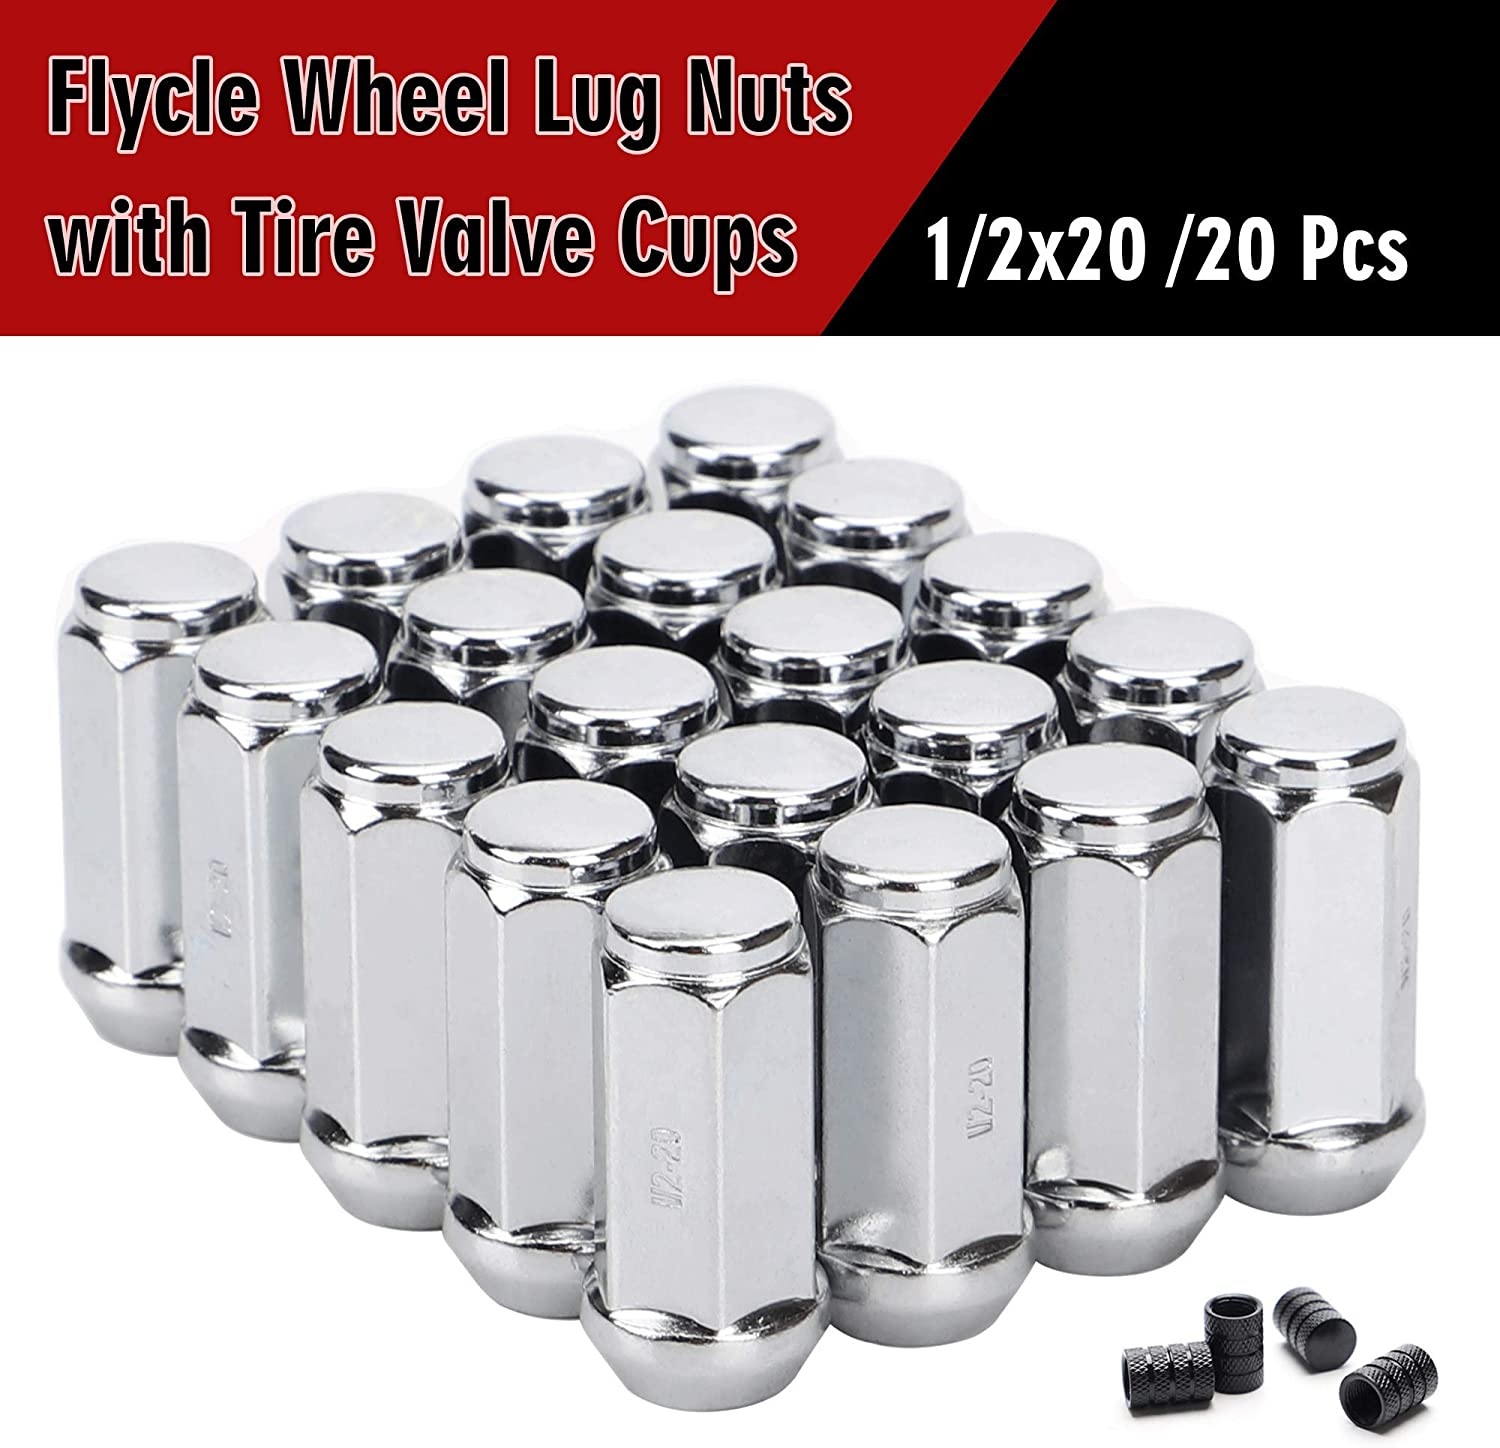 19mm Hex Wheel Lug Nut for Dodge Ford Mustang Jeep Tj Jk Cherokee Liberty Wrangler Aftermarket Wheels 20PCS 1.89 inch Chrome 1//2-20 Closed End Bulge Acorn Lug Nuts Cone Seat